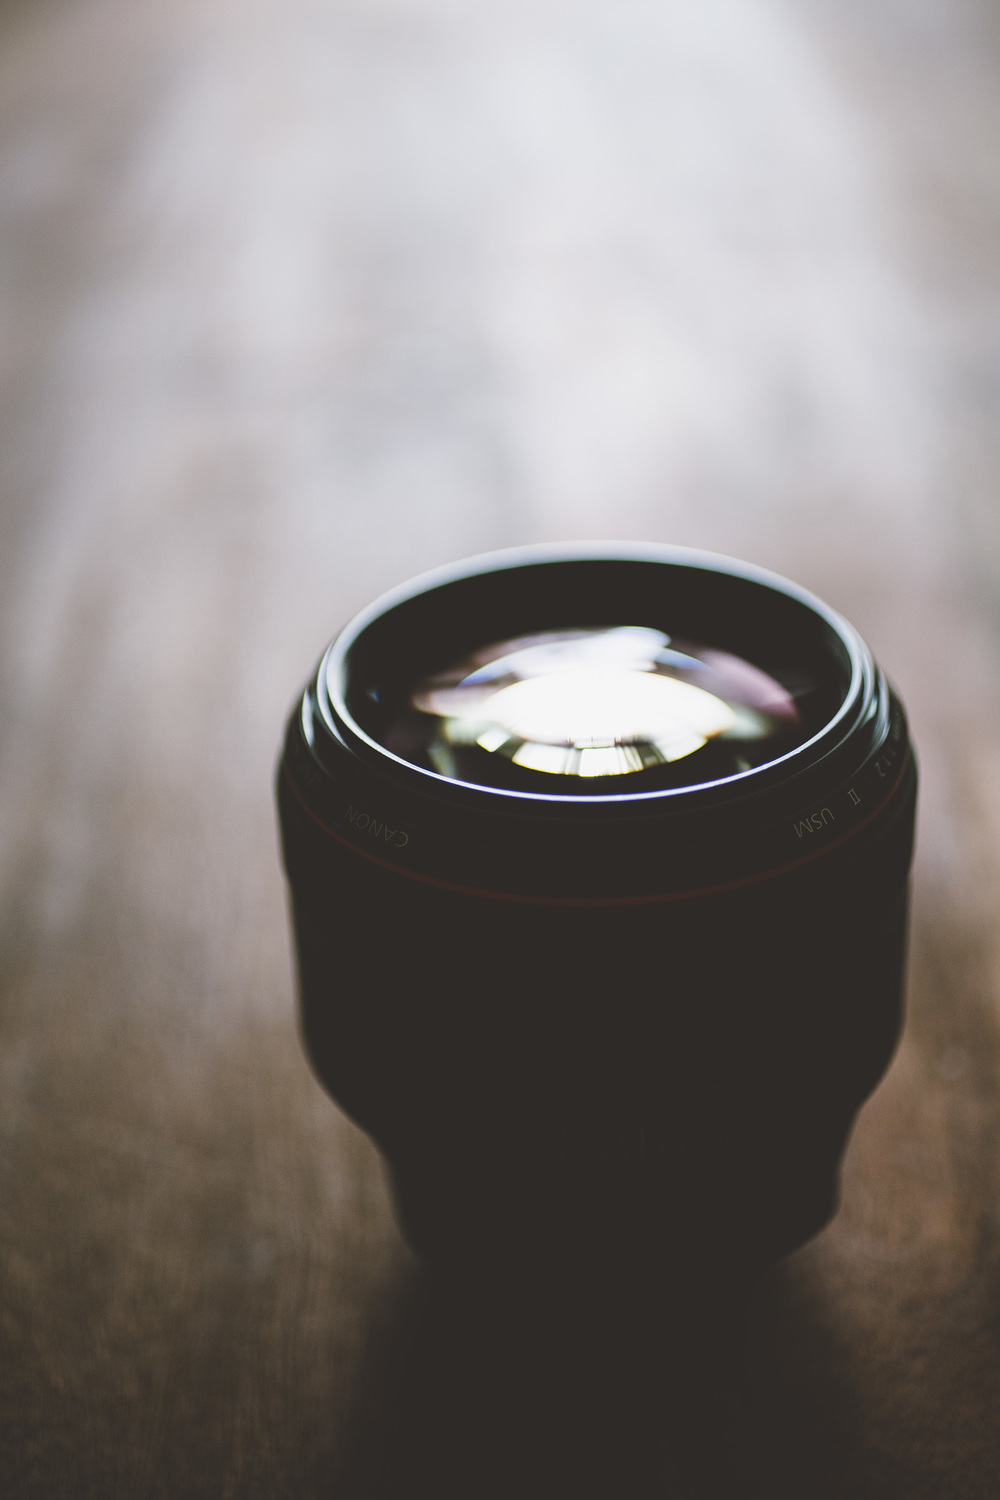 Canon 85mm f/1.2L II USM– What else can i say about this mid-range prime other than wow. This is once amazingly beautiful piece of glass and you get some of the most striking bokeh that i have seen. The only caveat to this lens is it's strange and rather slow motorized autofocus. Therefore it's not a great lens for when your subject is in motion but for static models it's perfect and that's why this lens remains a staple in my bag.